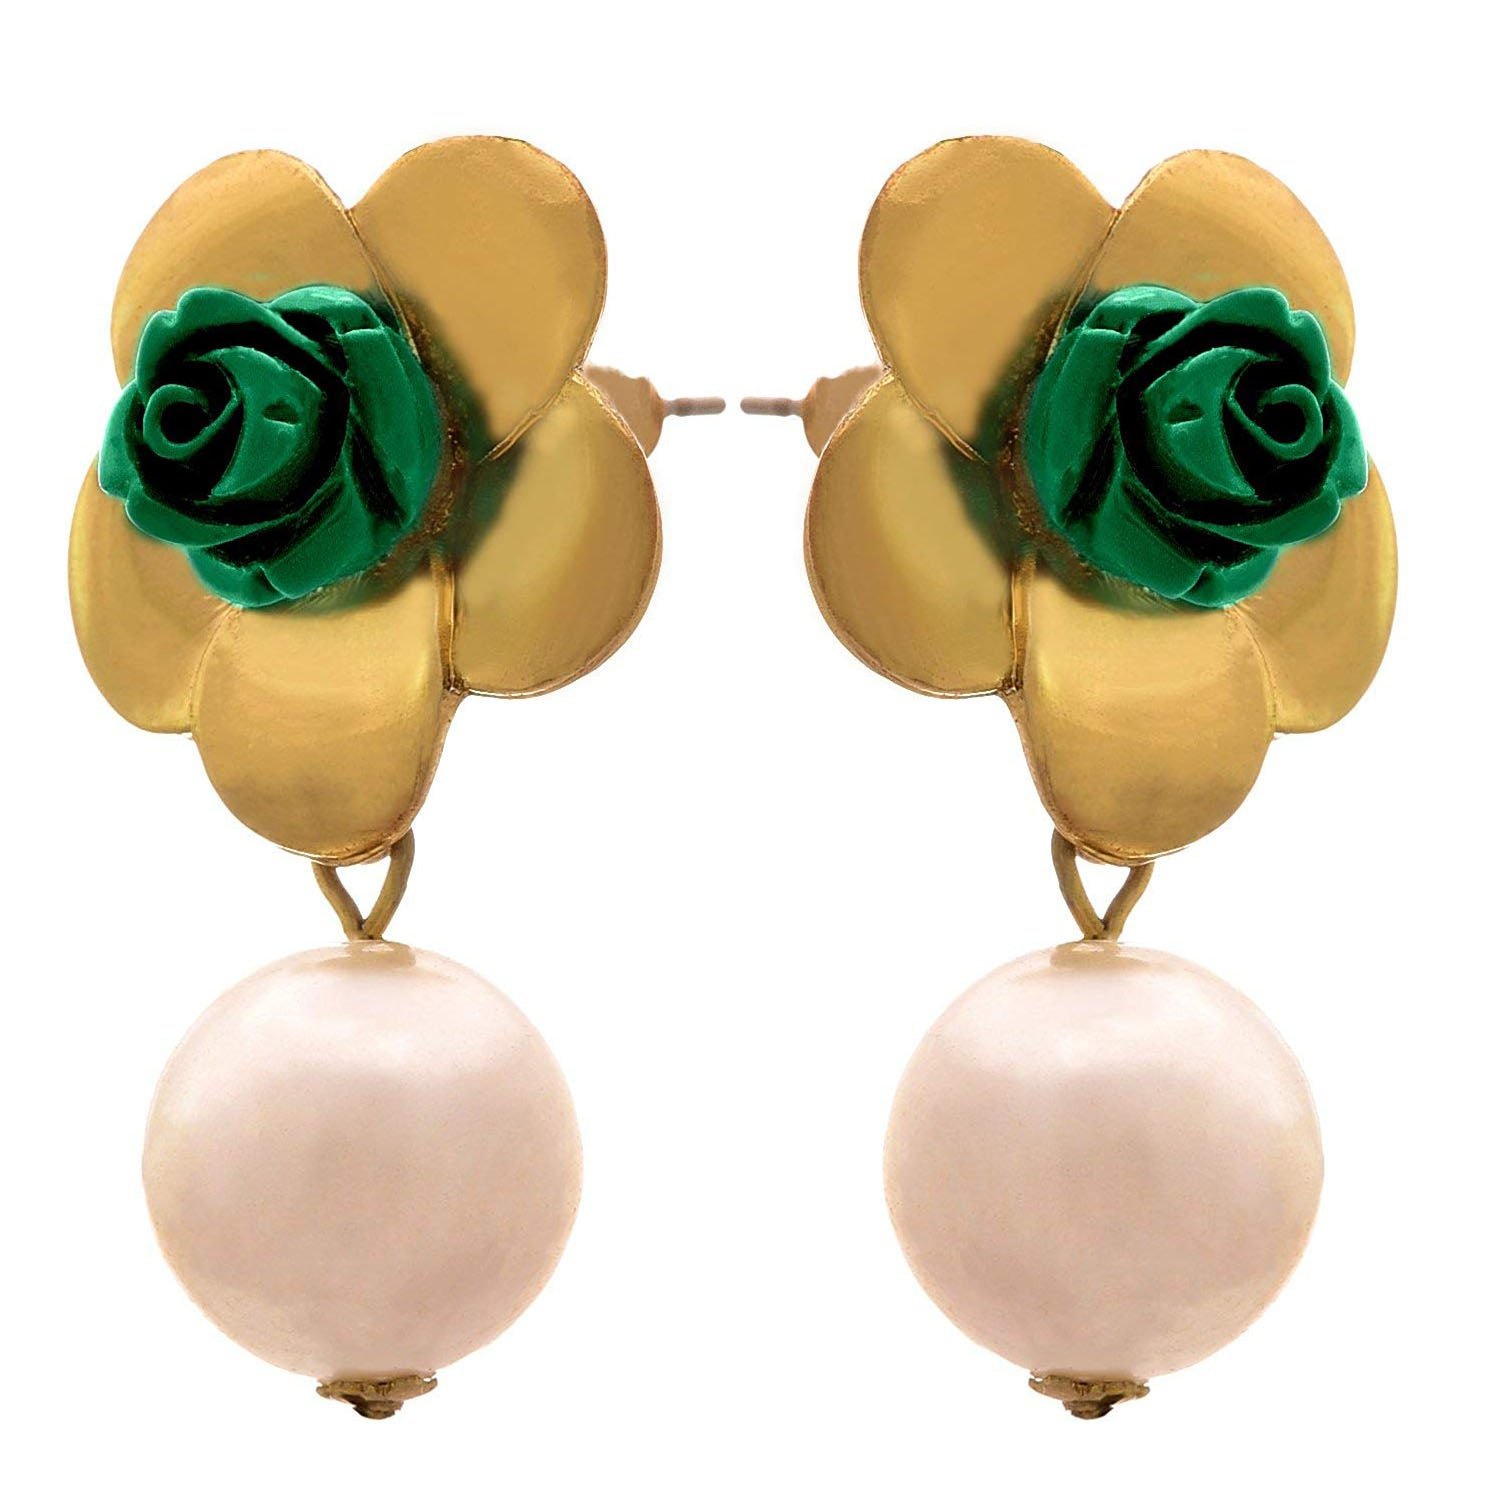 Jfl- Traditional Ethnic One Gram Gold Plated Green Rose Earrings For Women And Girls.